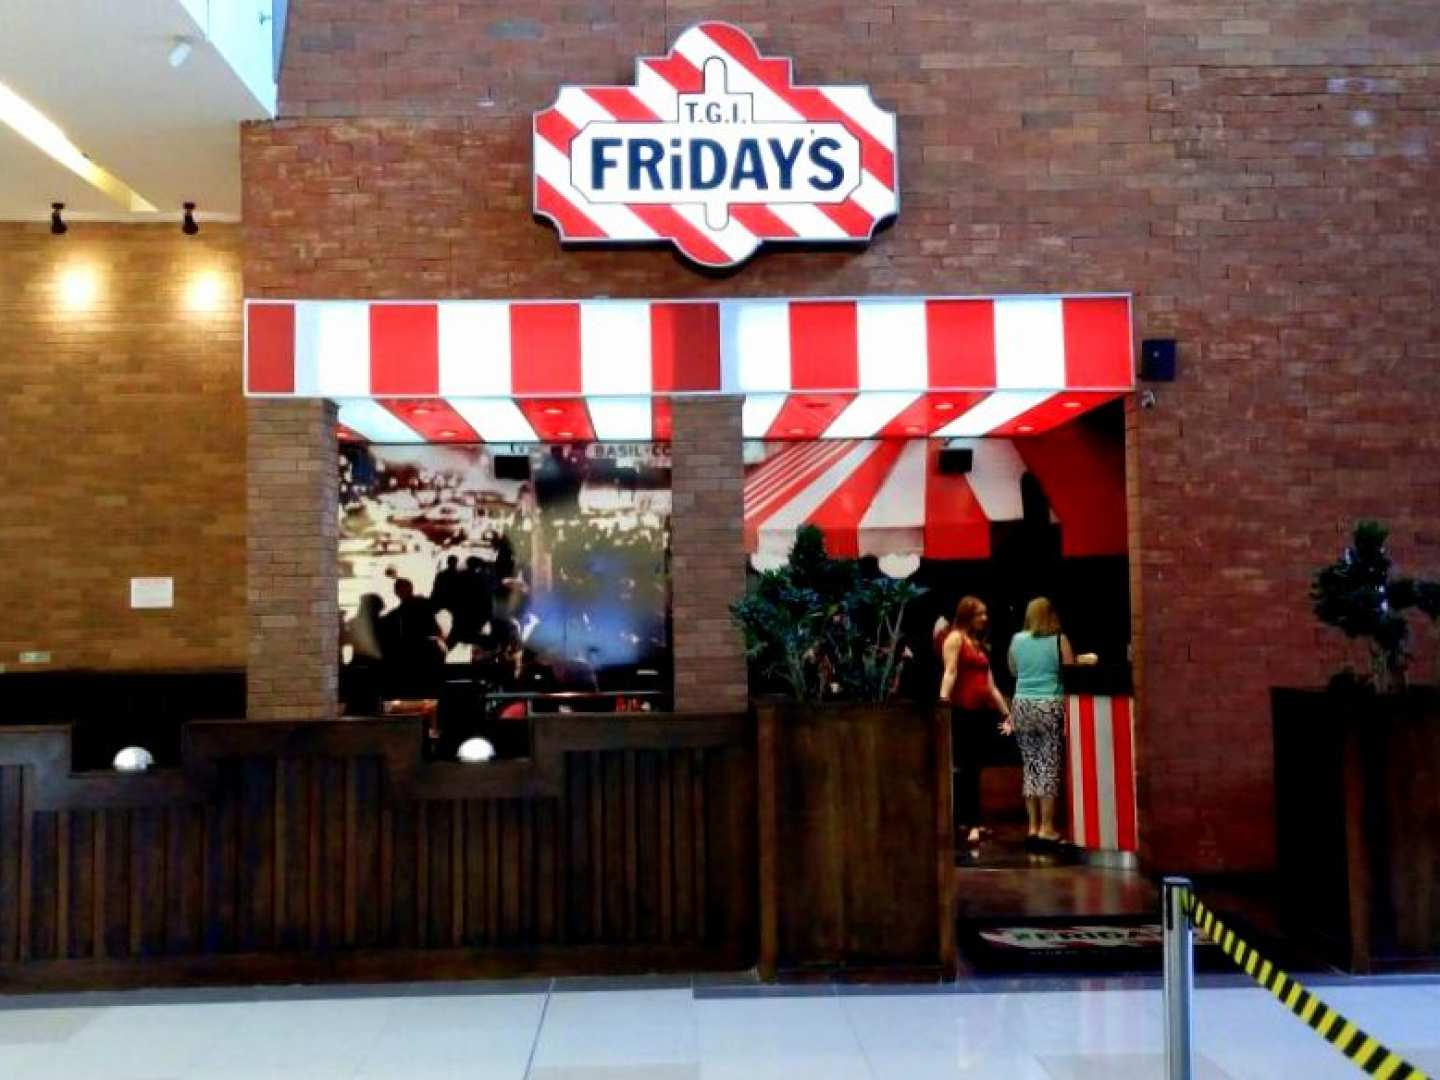 T.G.I. Friday's (Multiplaza)